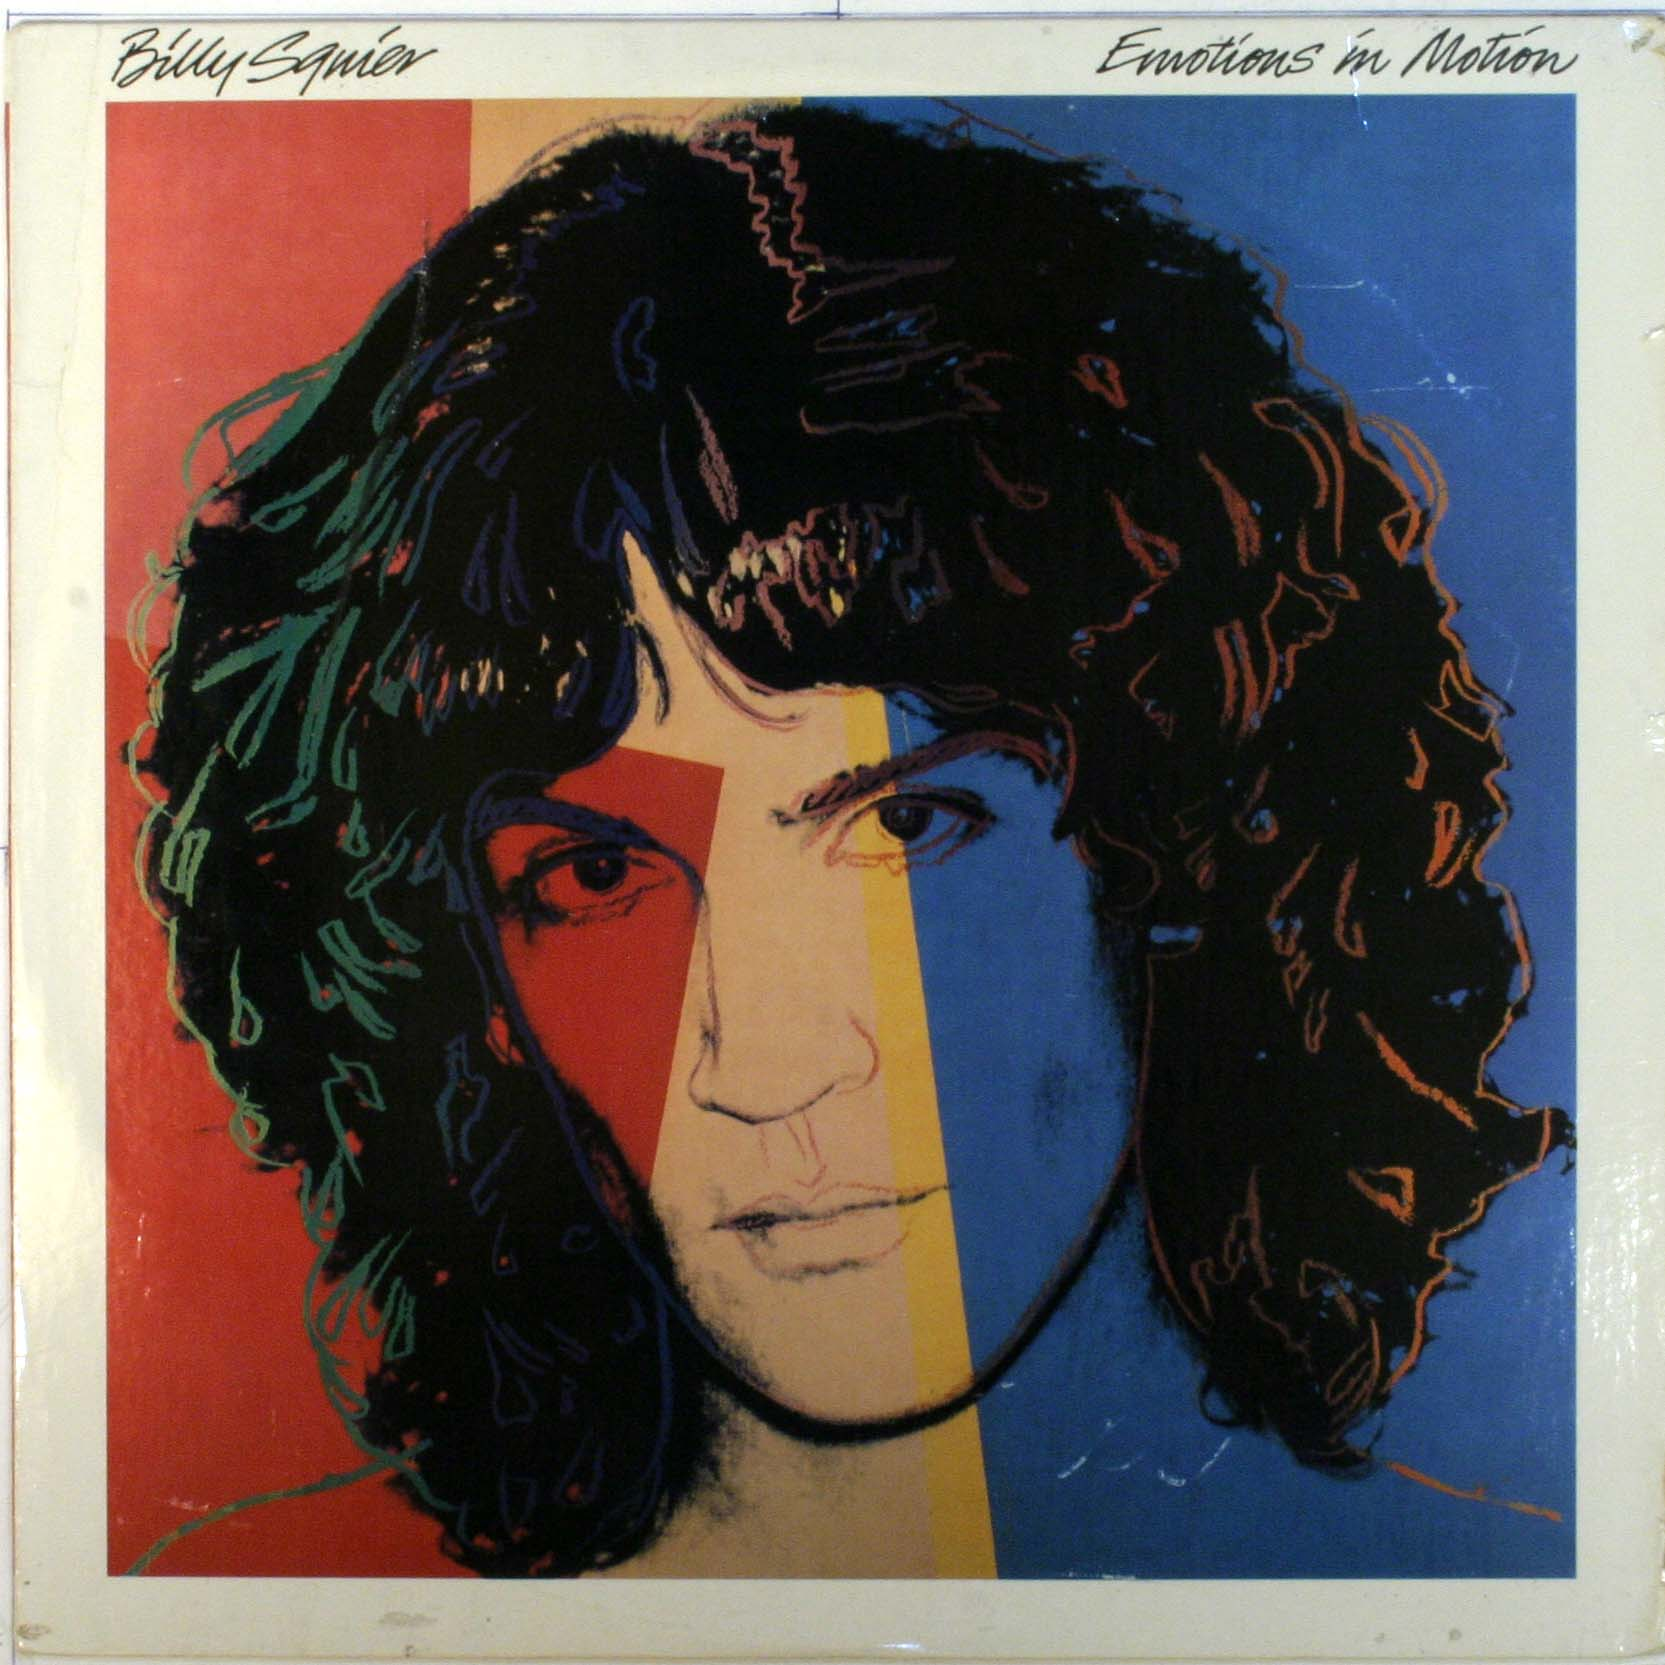 Billy Squier - Emotions In Motion Album